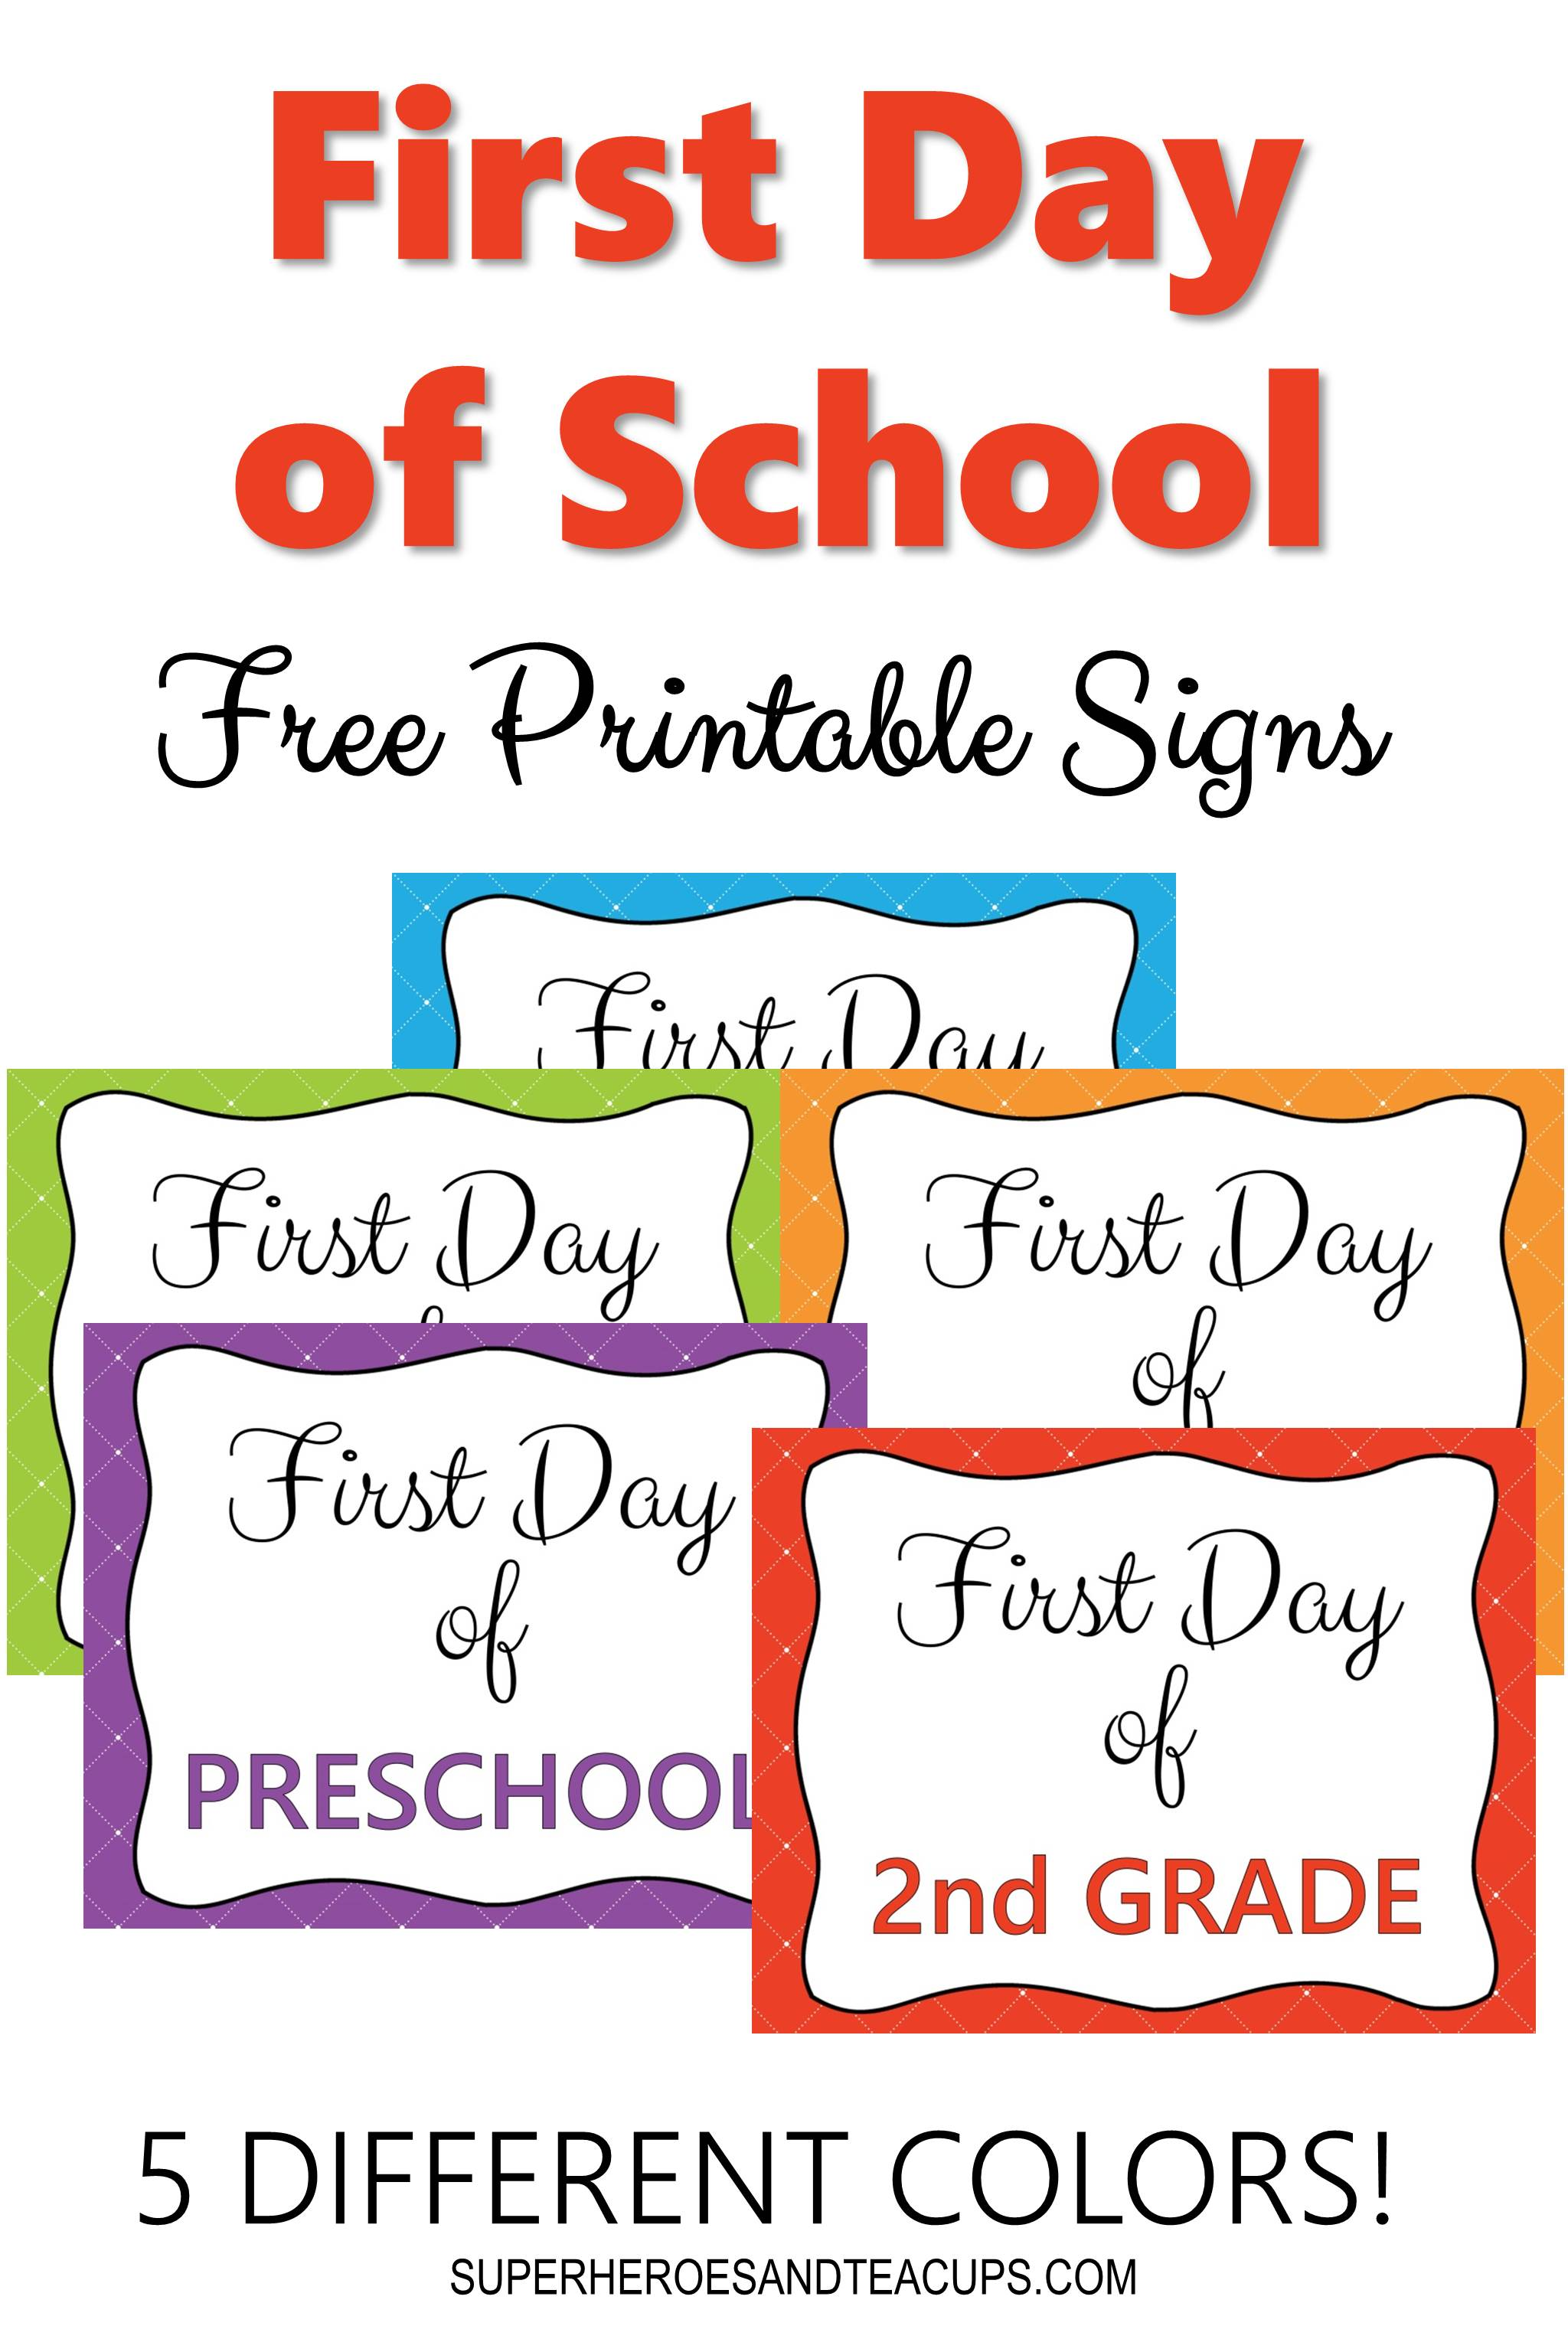 graphic about First Day of School Sign Printable named 1st Working day of Faculty Indications Totally free Printable for Just about every Quality